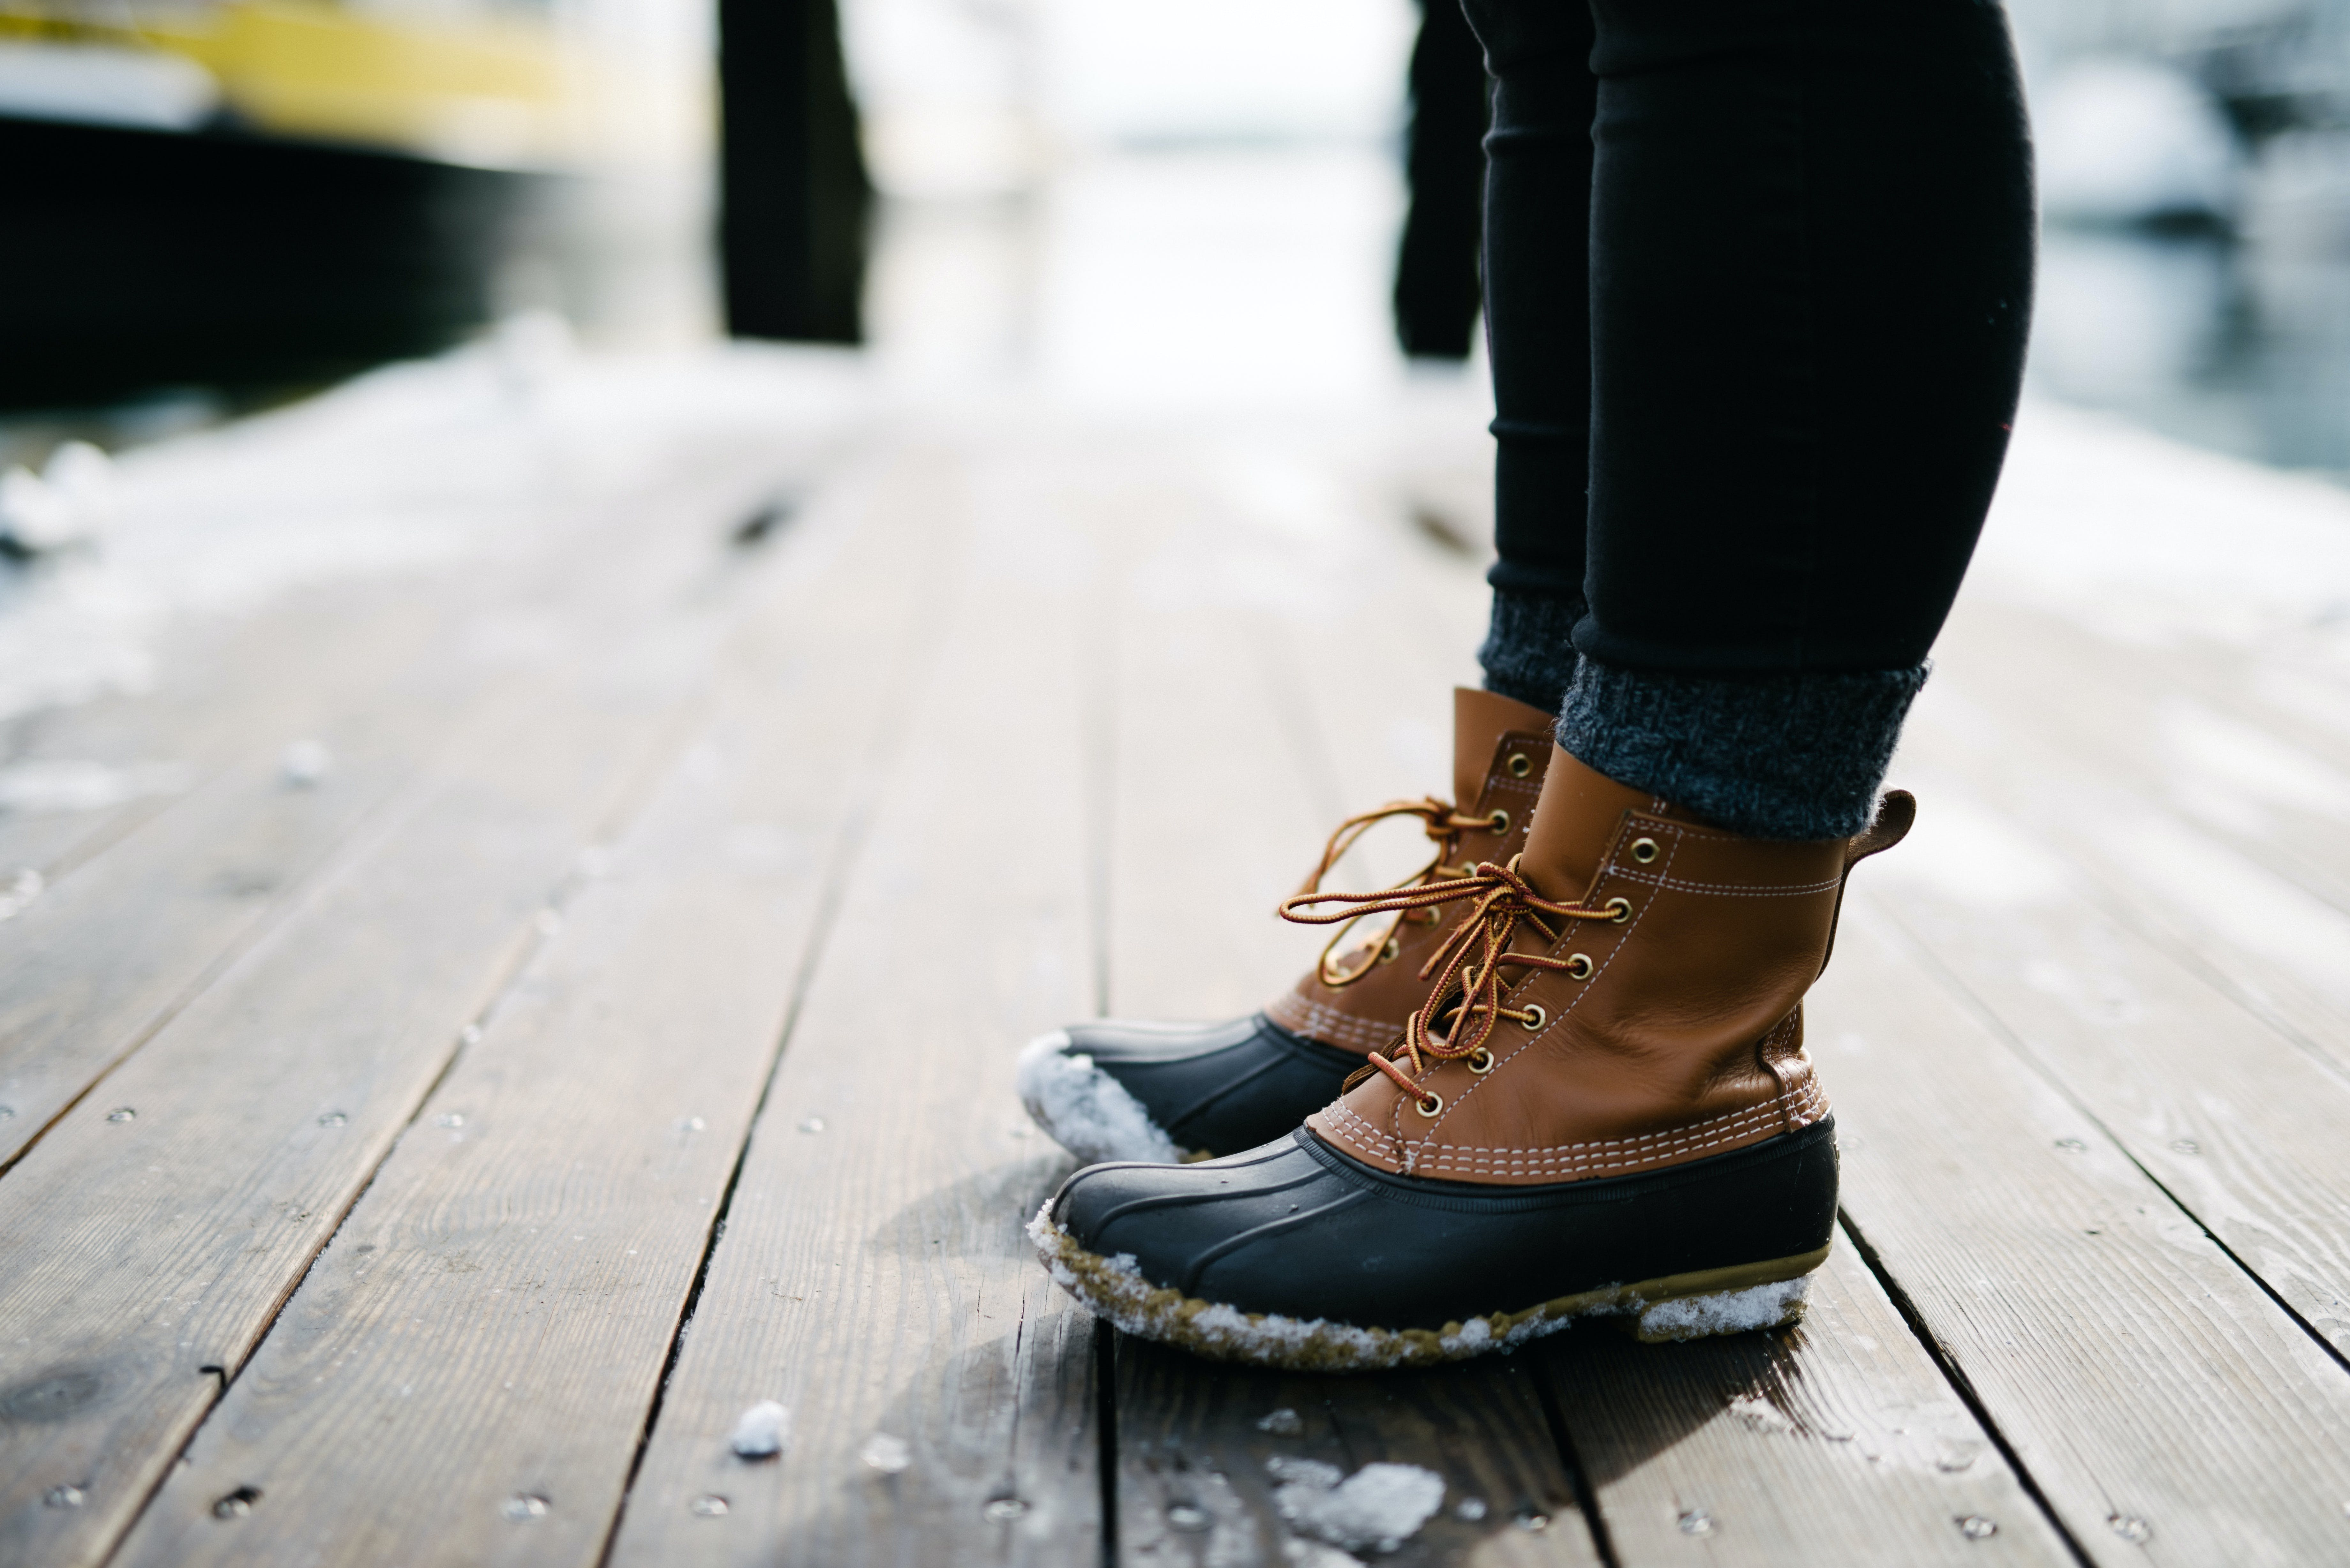 Free stock photo of cold, snow, feet, winter